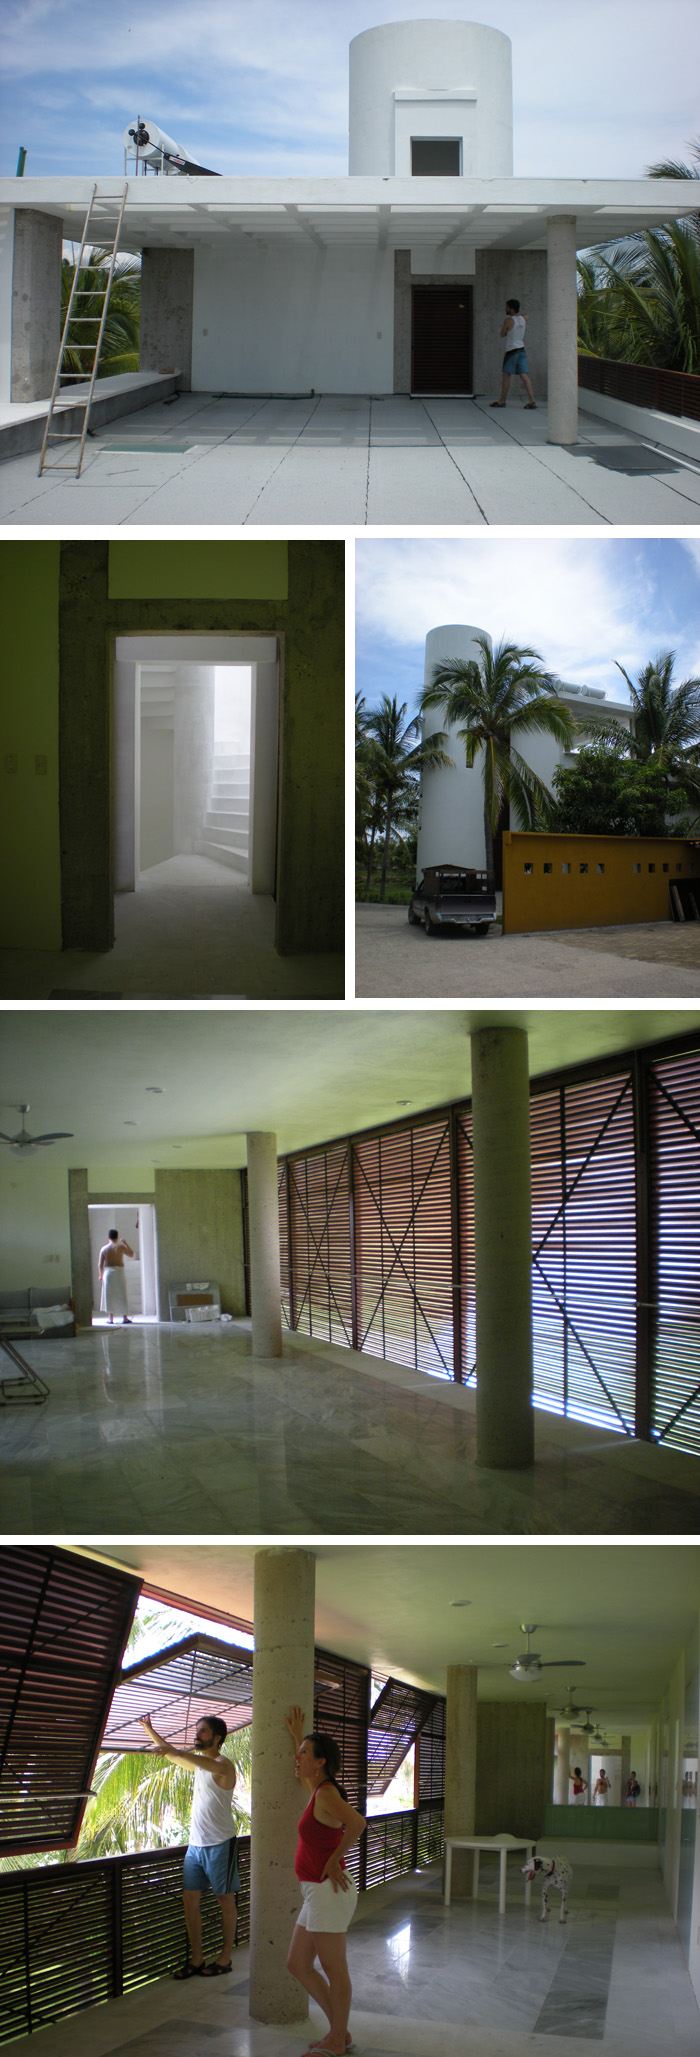 acapulco_oncle_white